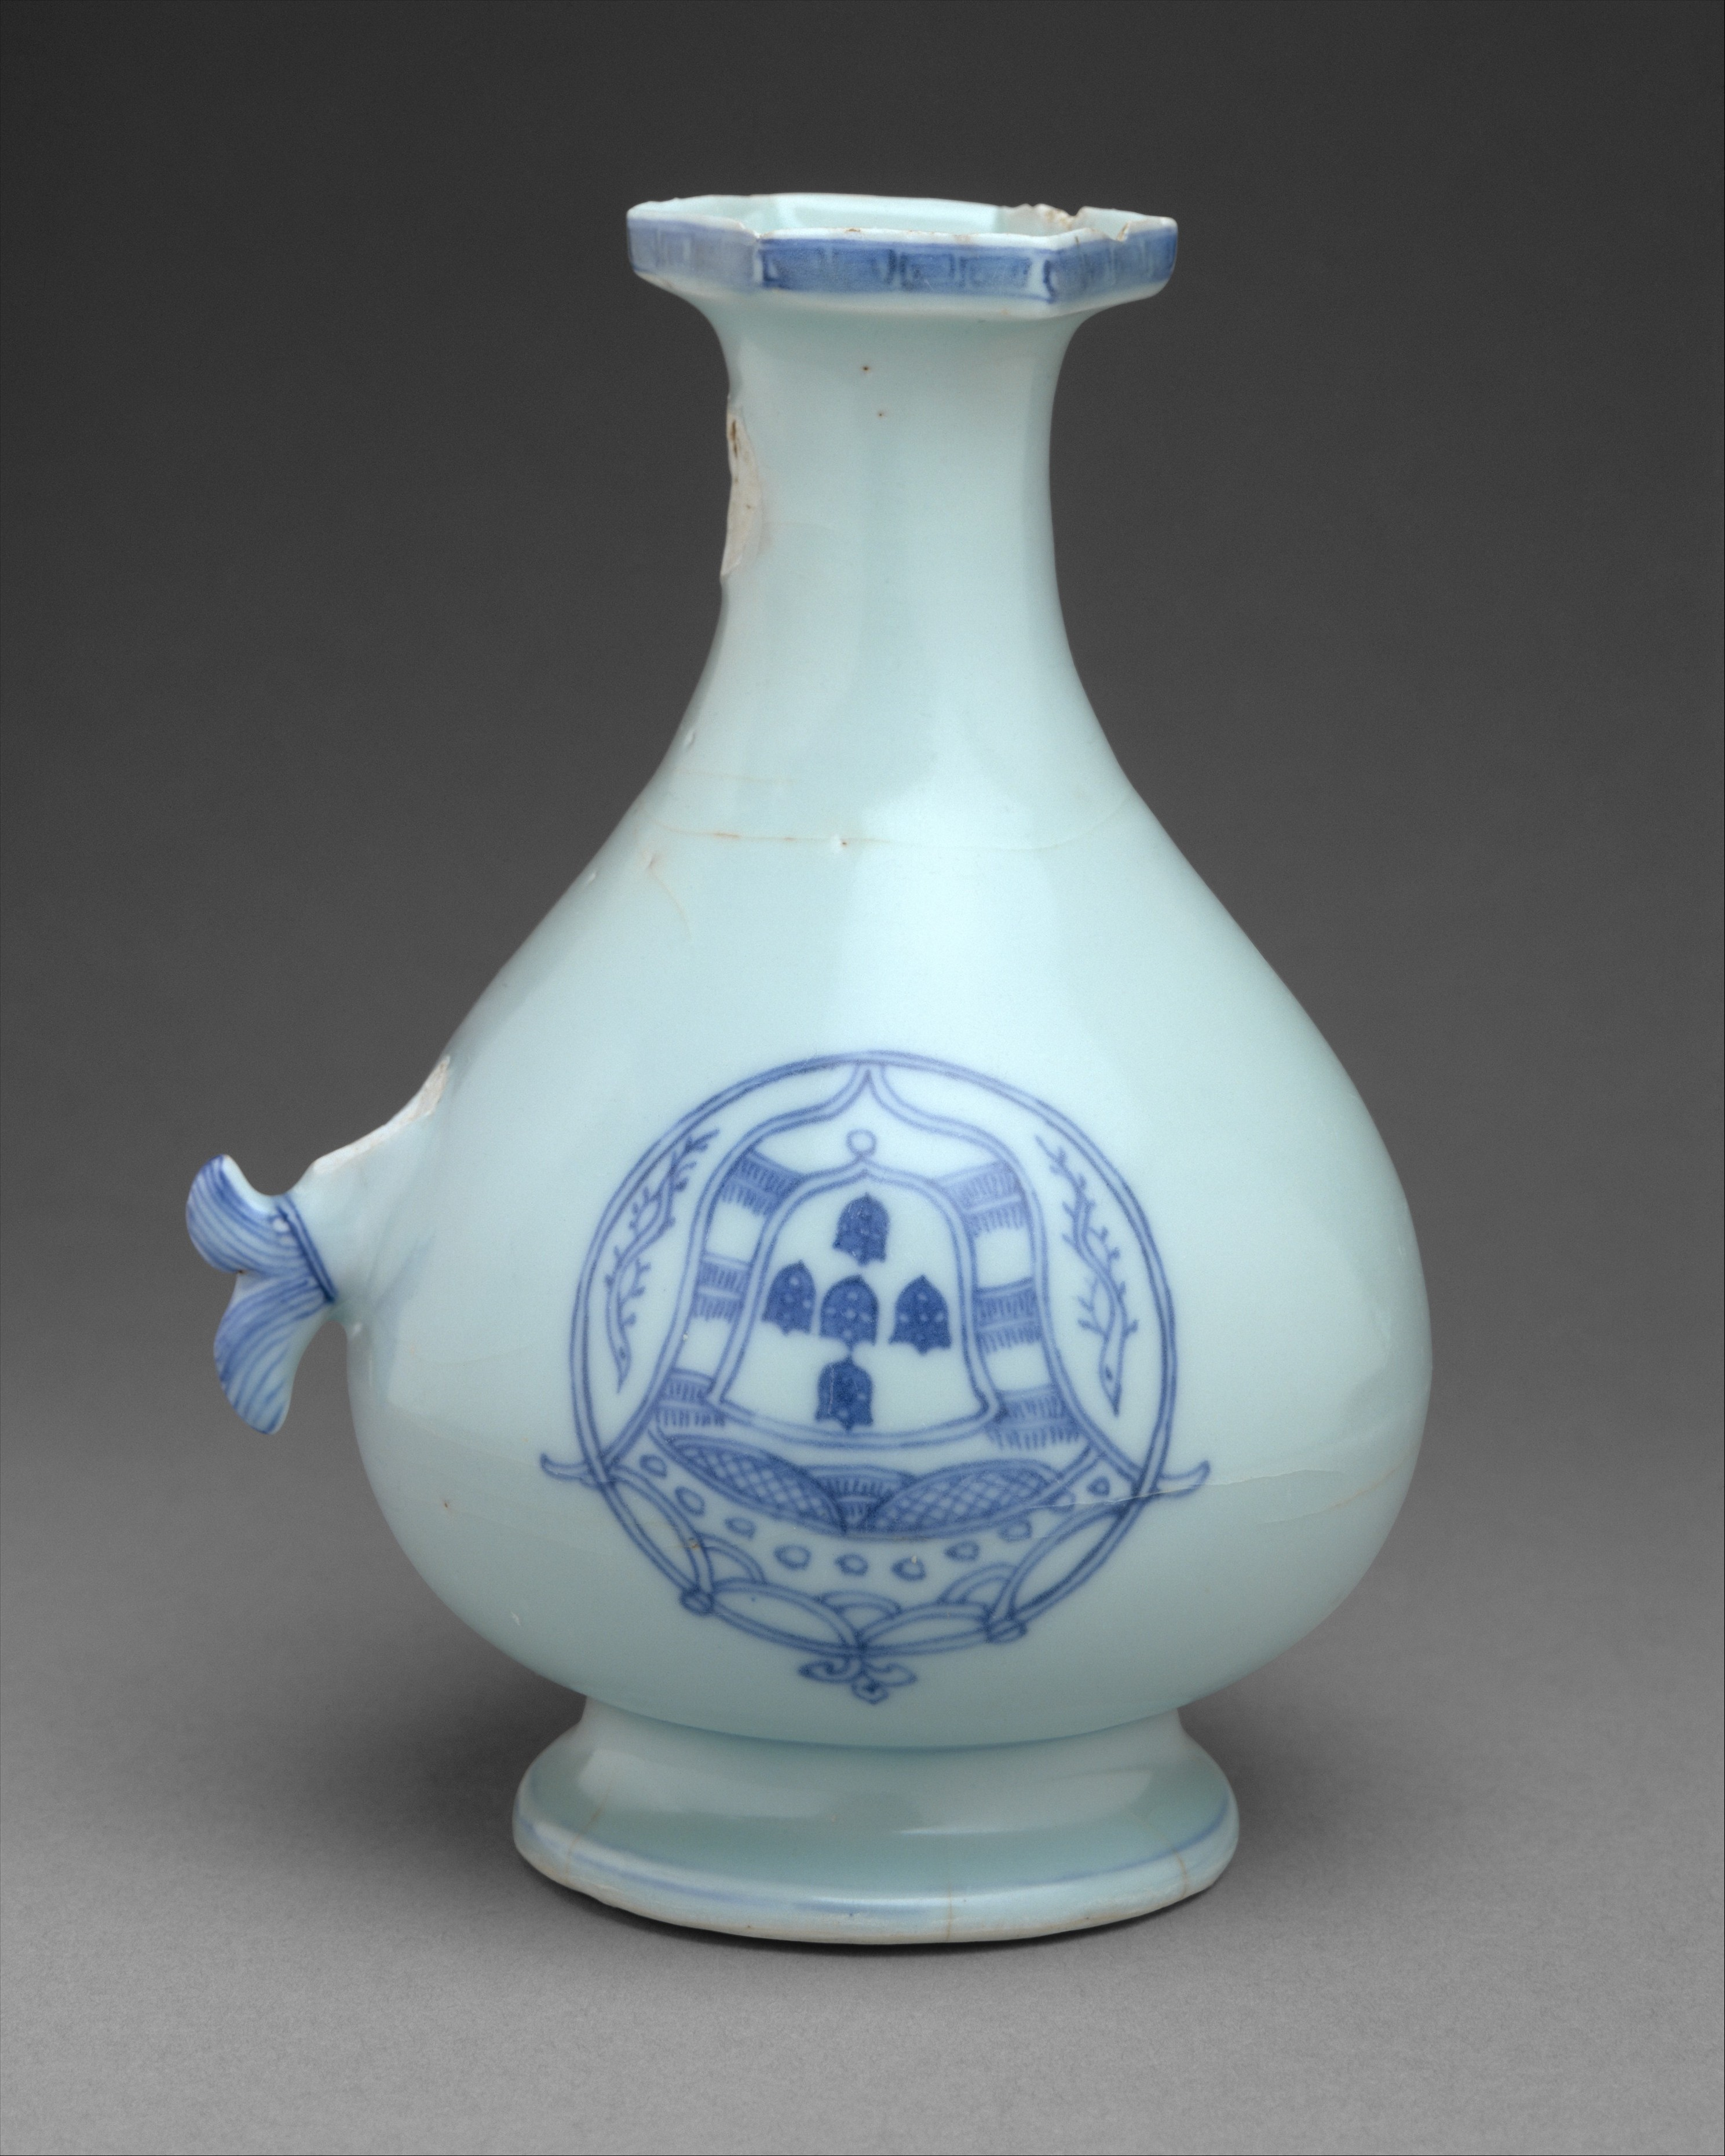 Chinese potter, Porcelain jug with Portuguese arms, ca. 1520-1540, The Metropolitan Museum of Art, New York, NY, USA.